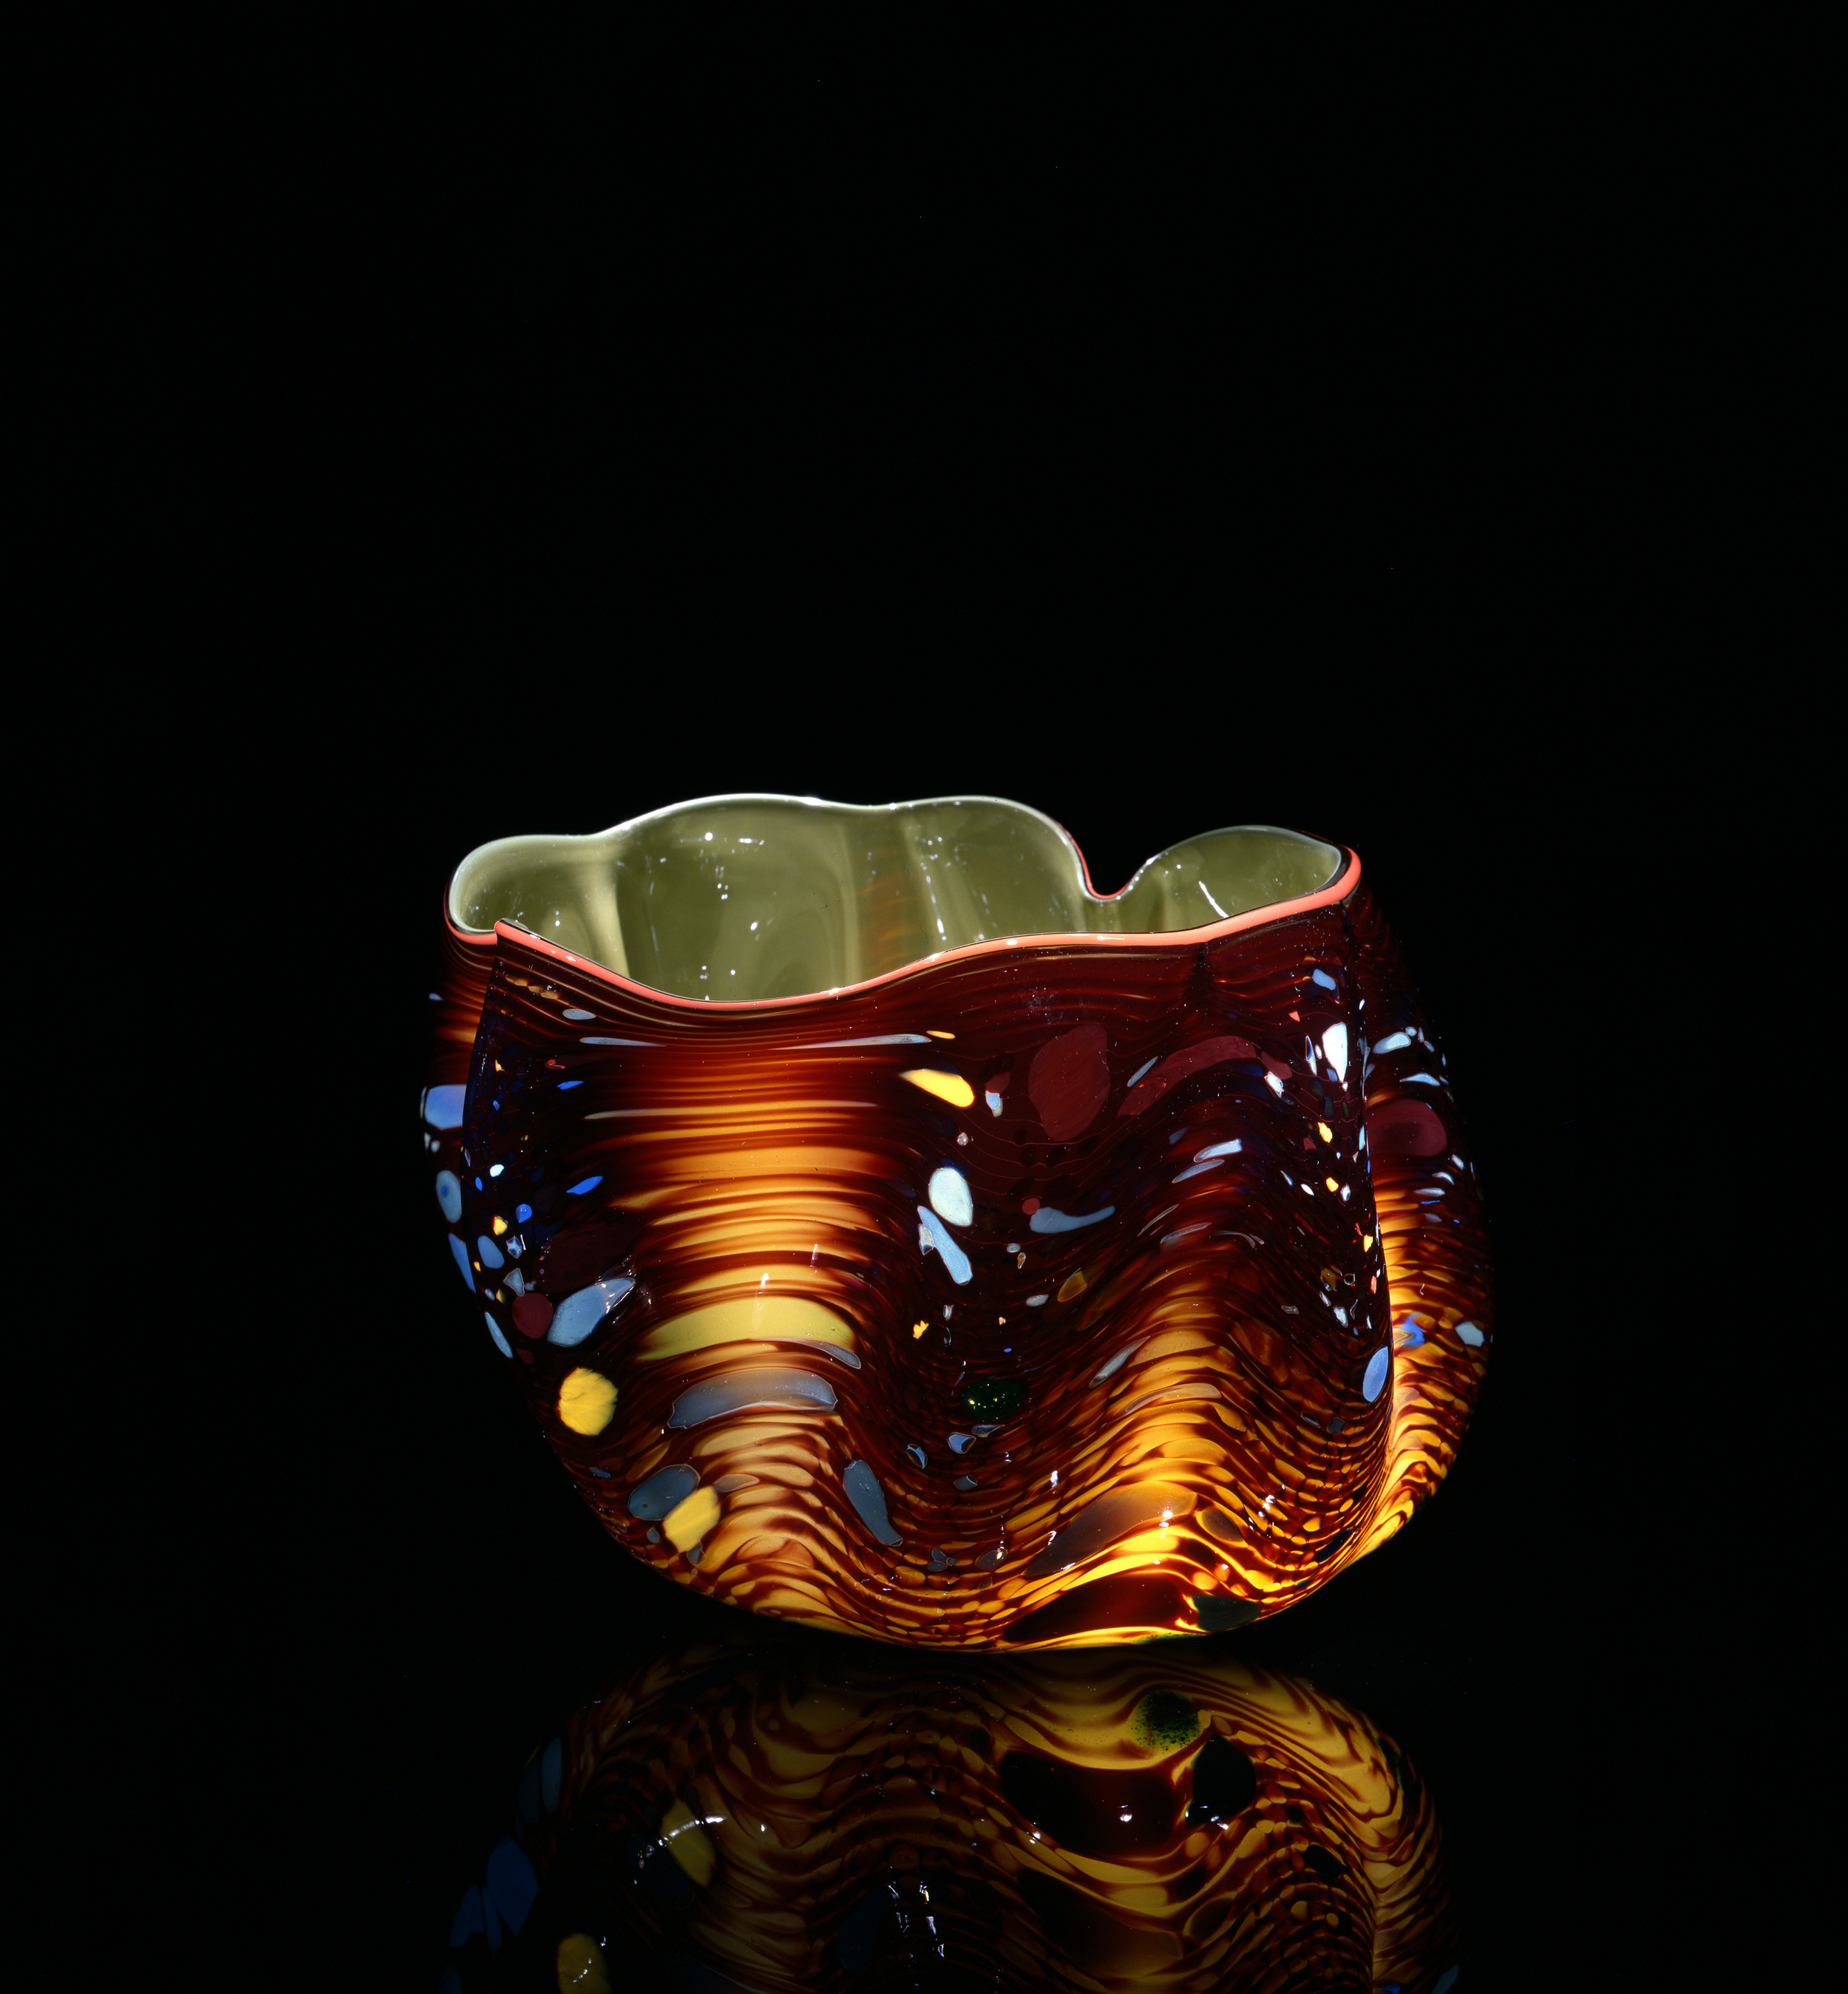 Dale Chihuly, May Green Macchia with Peach Lip Wrap (1982, glass, 5 x 6x 6 inches), DC.126